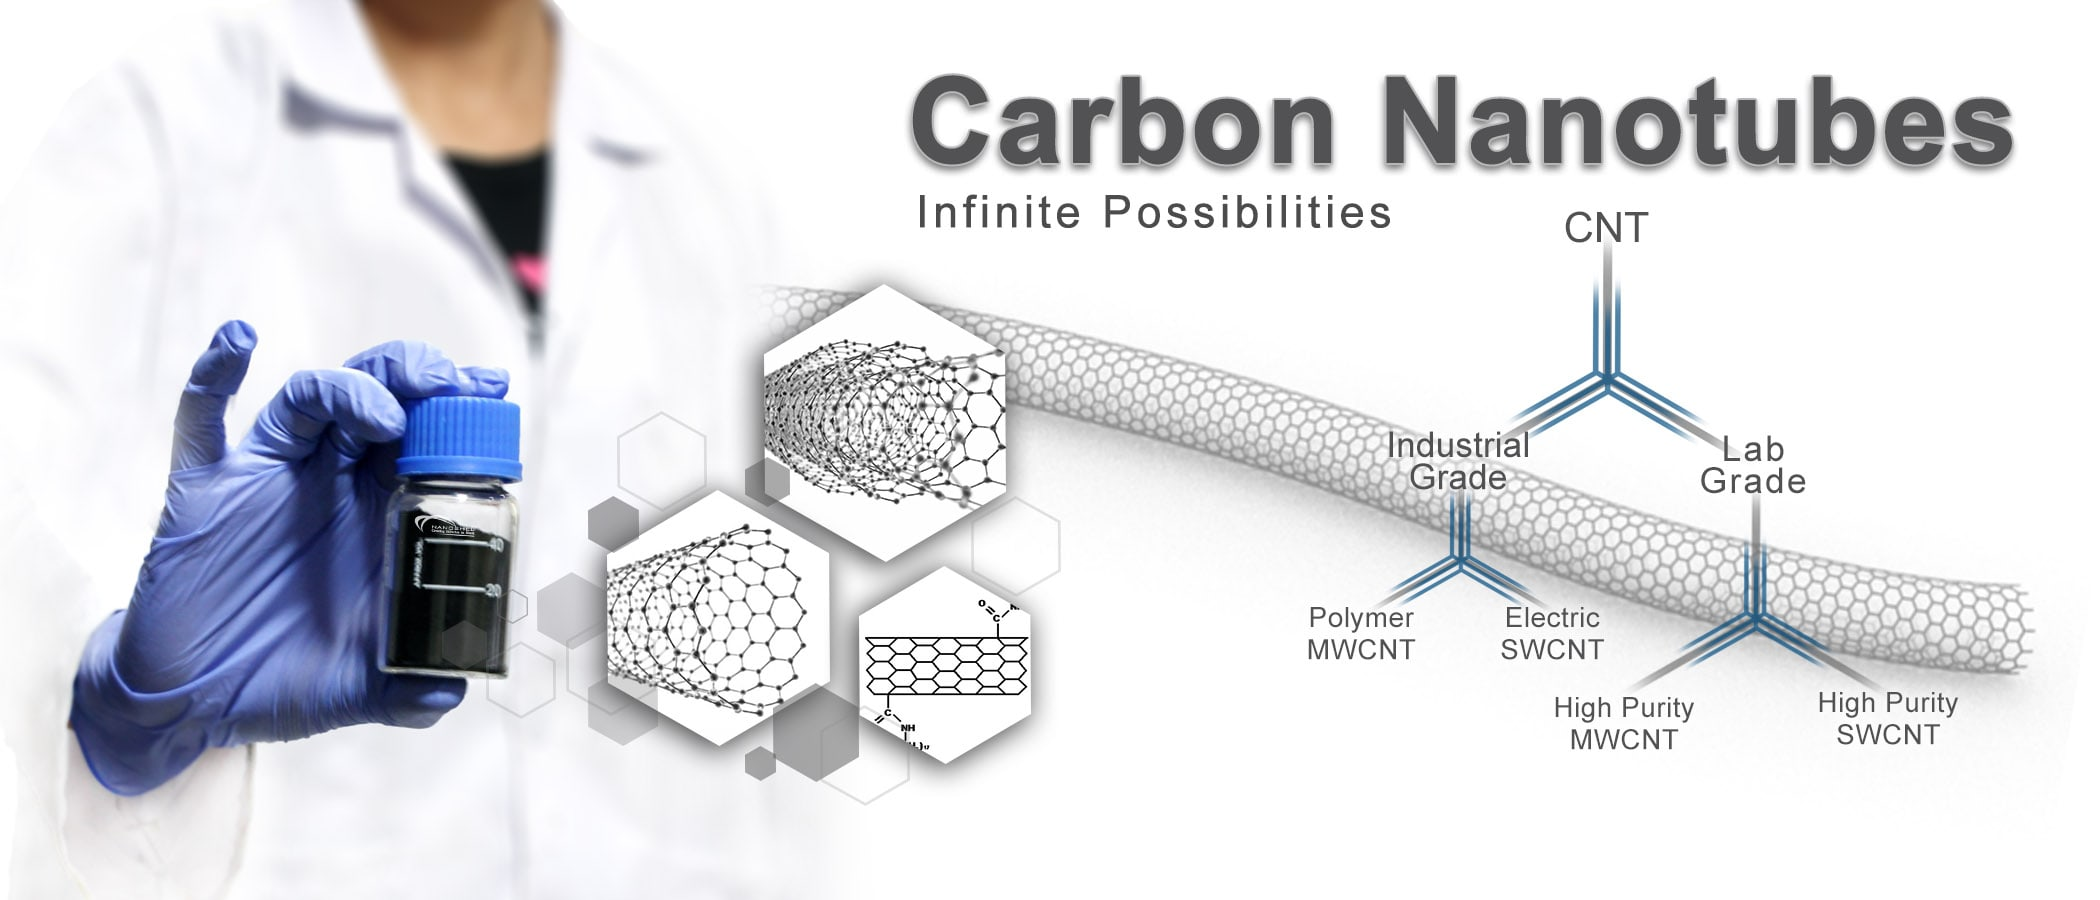 Carboxylic Acid Functionalized Carbon Nanotubes SWCNT